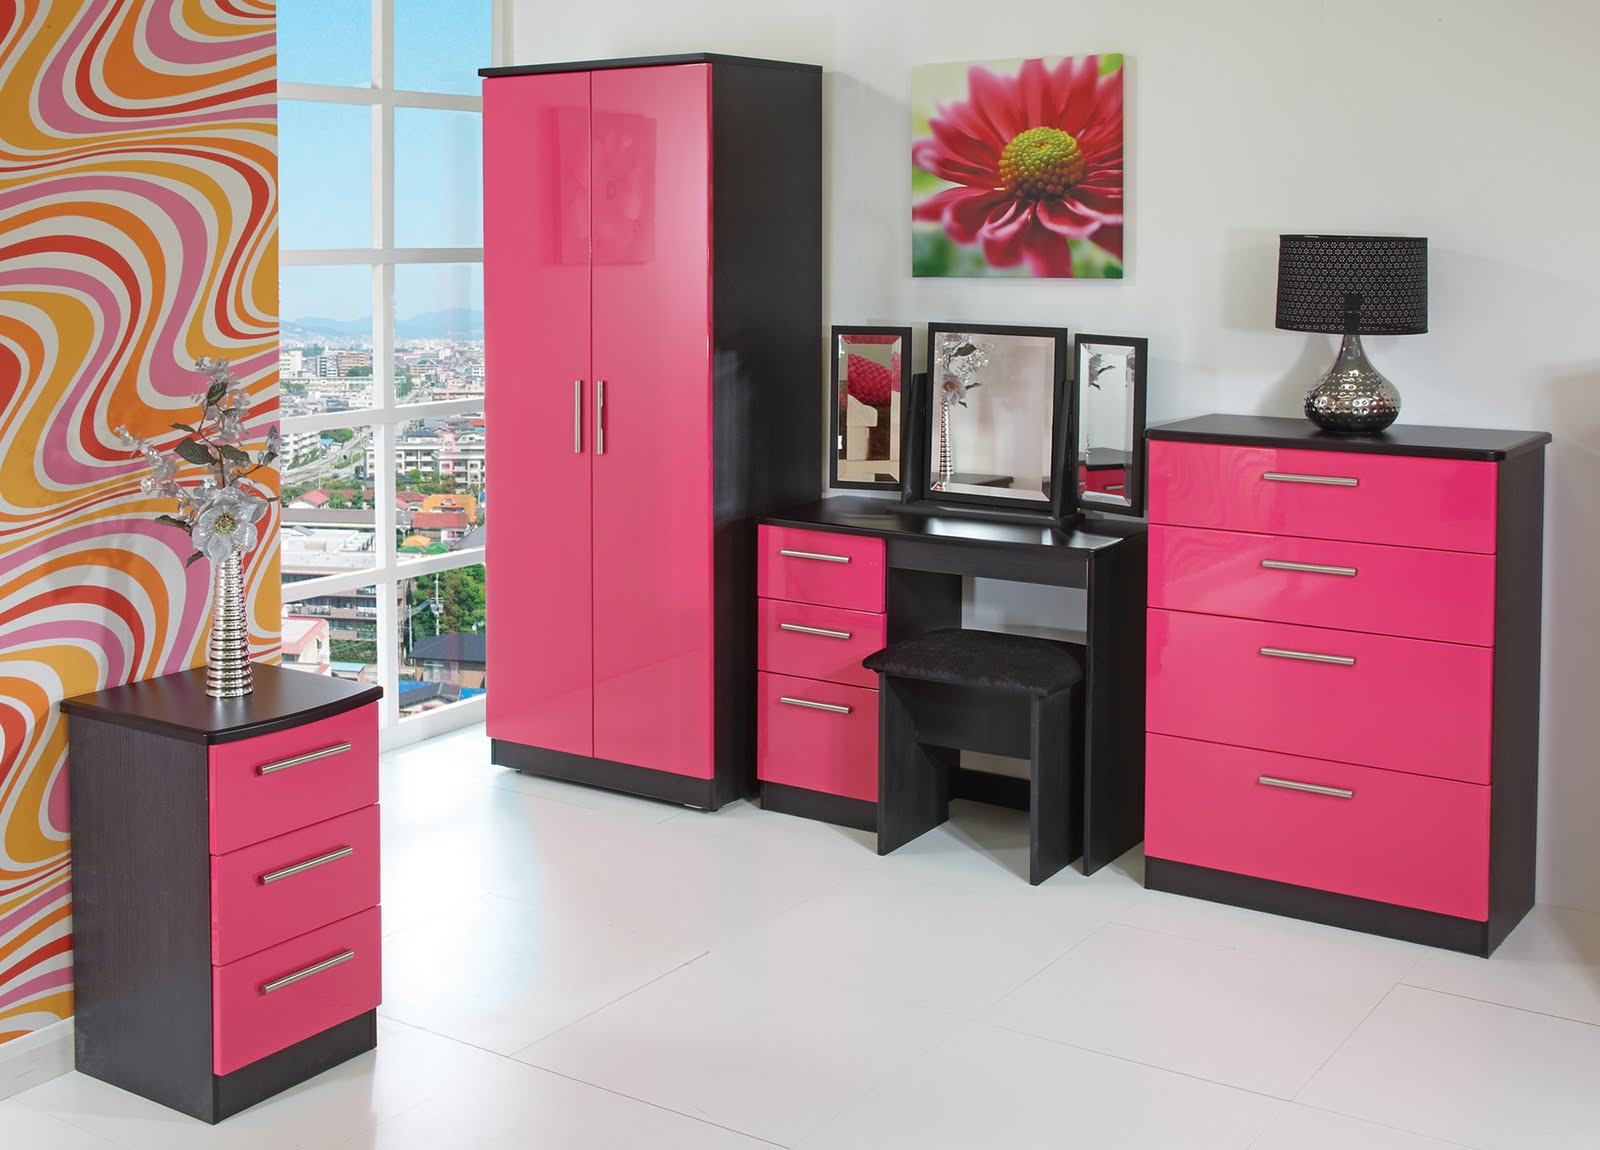 Pink And Black Bedroom Wallpaper Pink And Black Bedrooms 2 Hd Wallpaper Hdblackwallpapercom